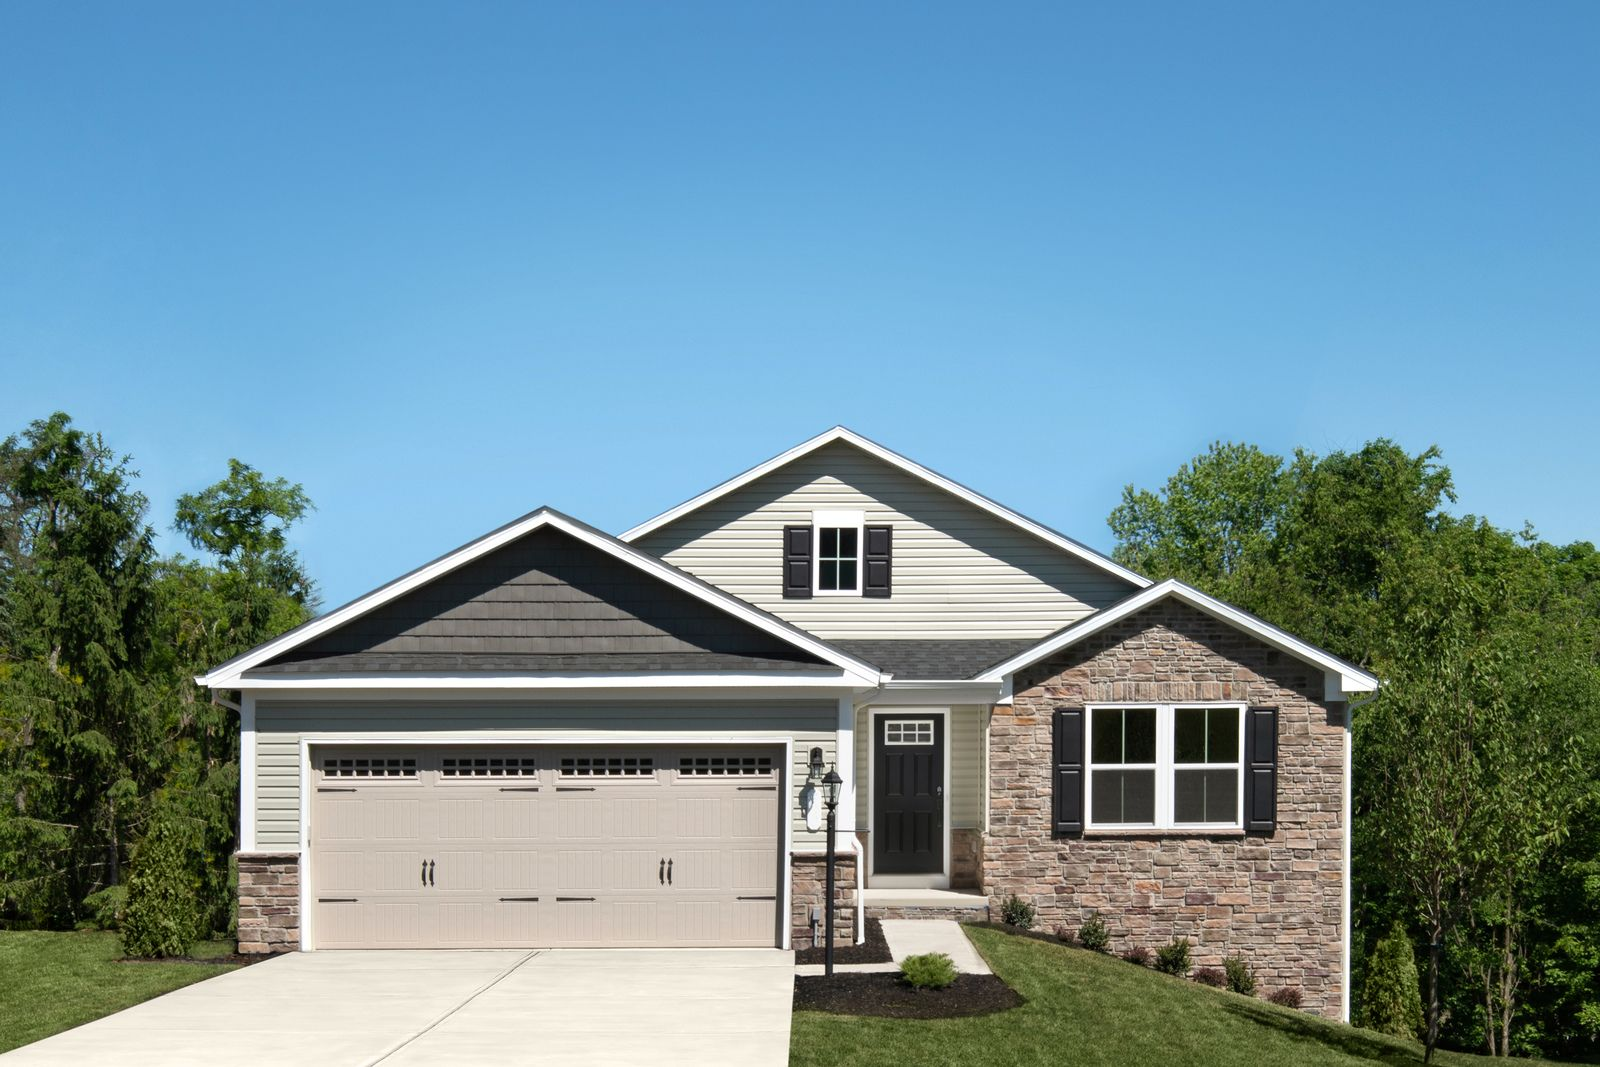 WELCOME HOME TO THE RESERVE AT BEAVER CREEK:Open plan ranch homes with Metro Park walking trails and MercyHealth Amherst HealthPlex next door! Landscaping, lawn and snow care included!Click here to schedule your visit today!